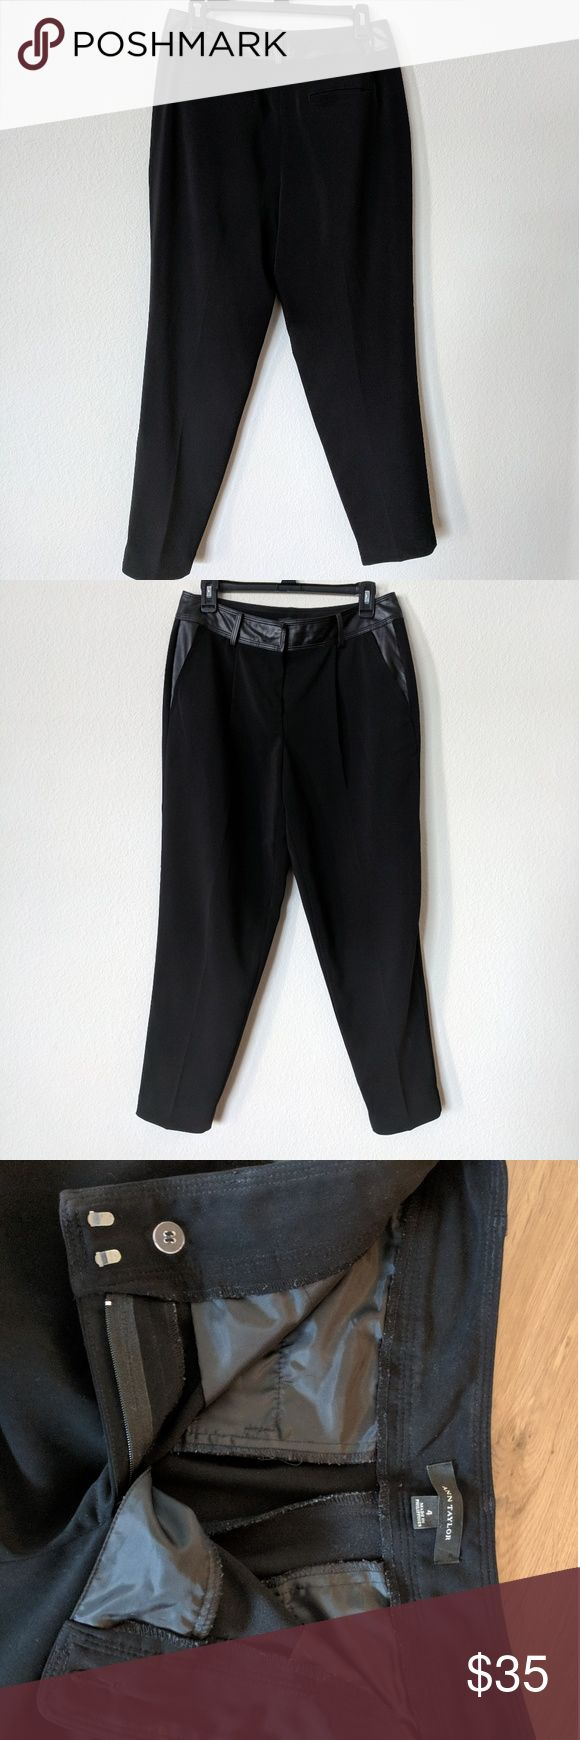 Black dress pants, says size 4 fits like a 9 Ann Taylor, black slacks, stretchy material Ann Taylor Pants Trousers